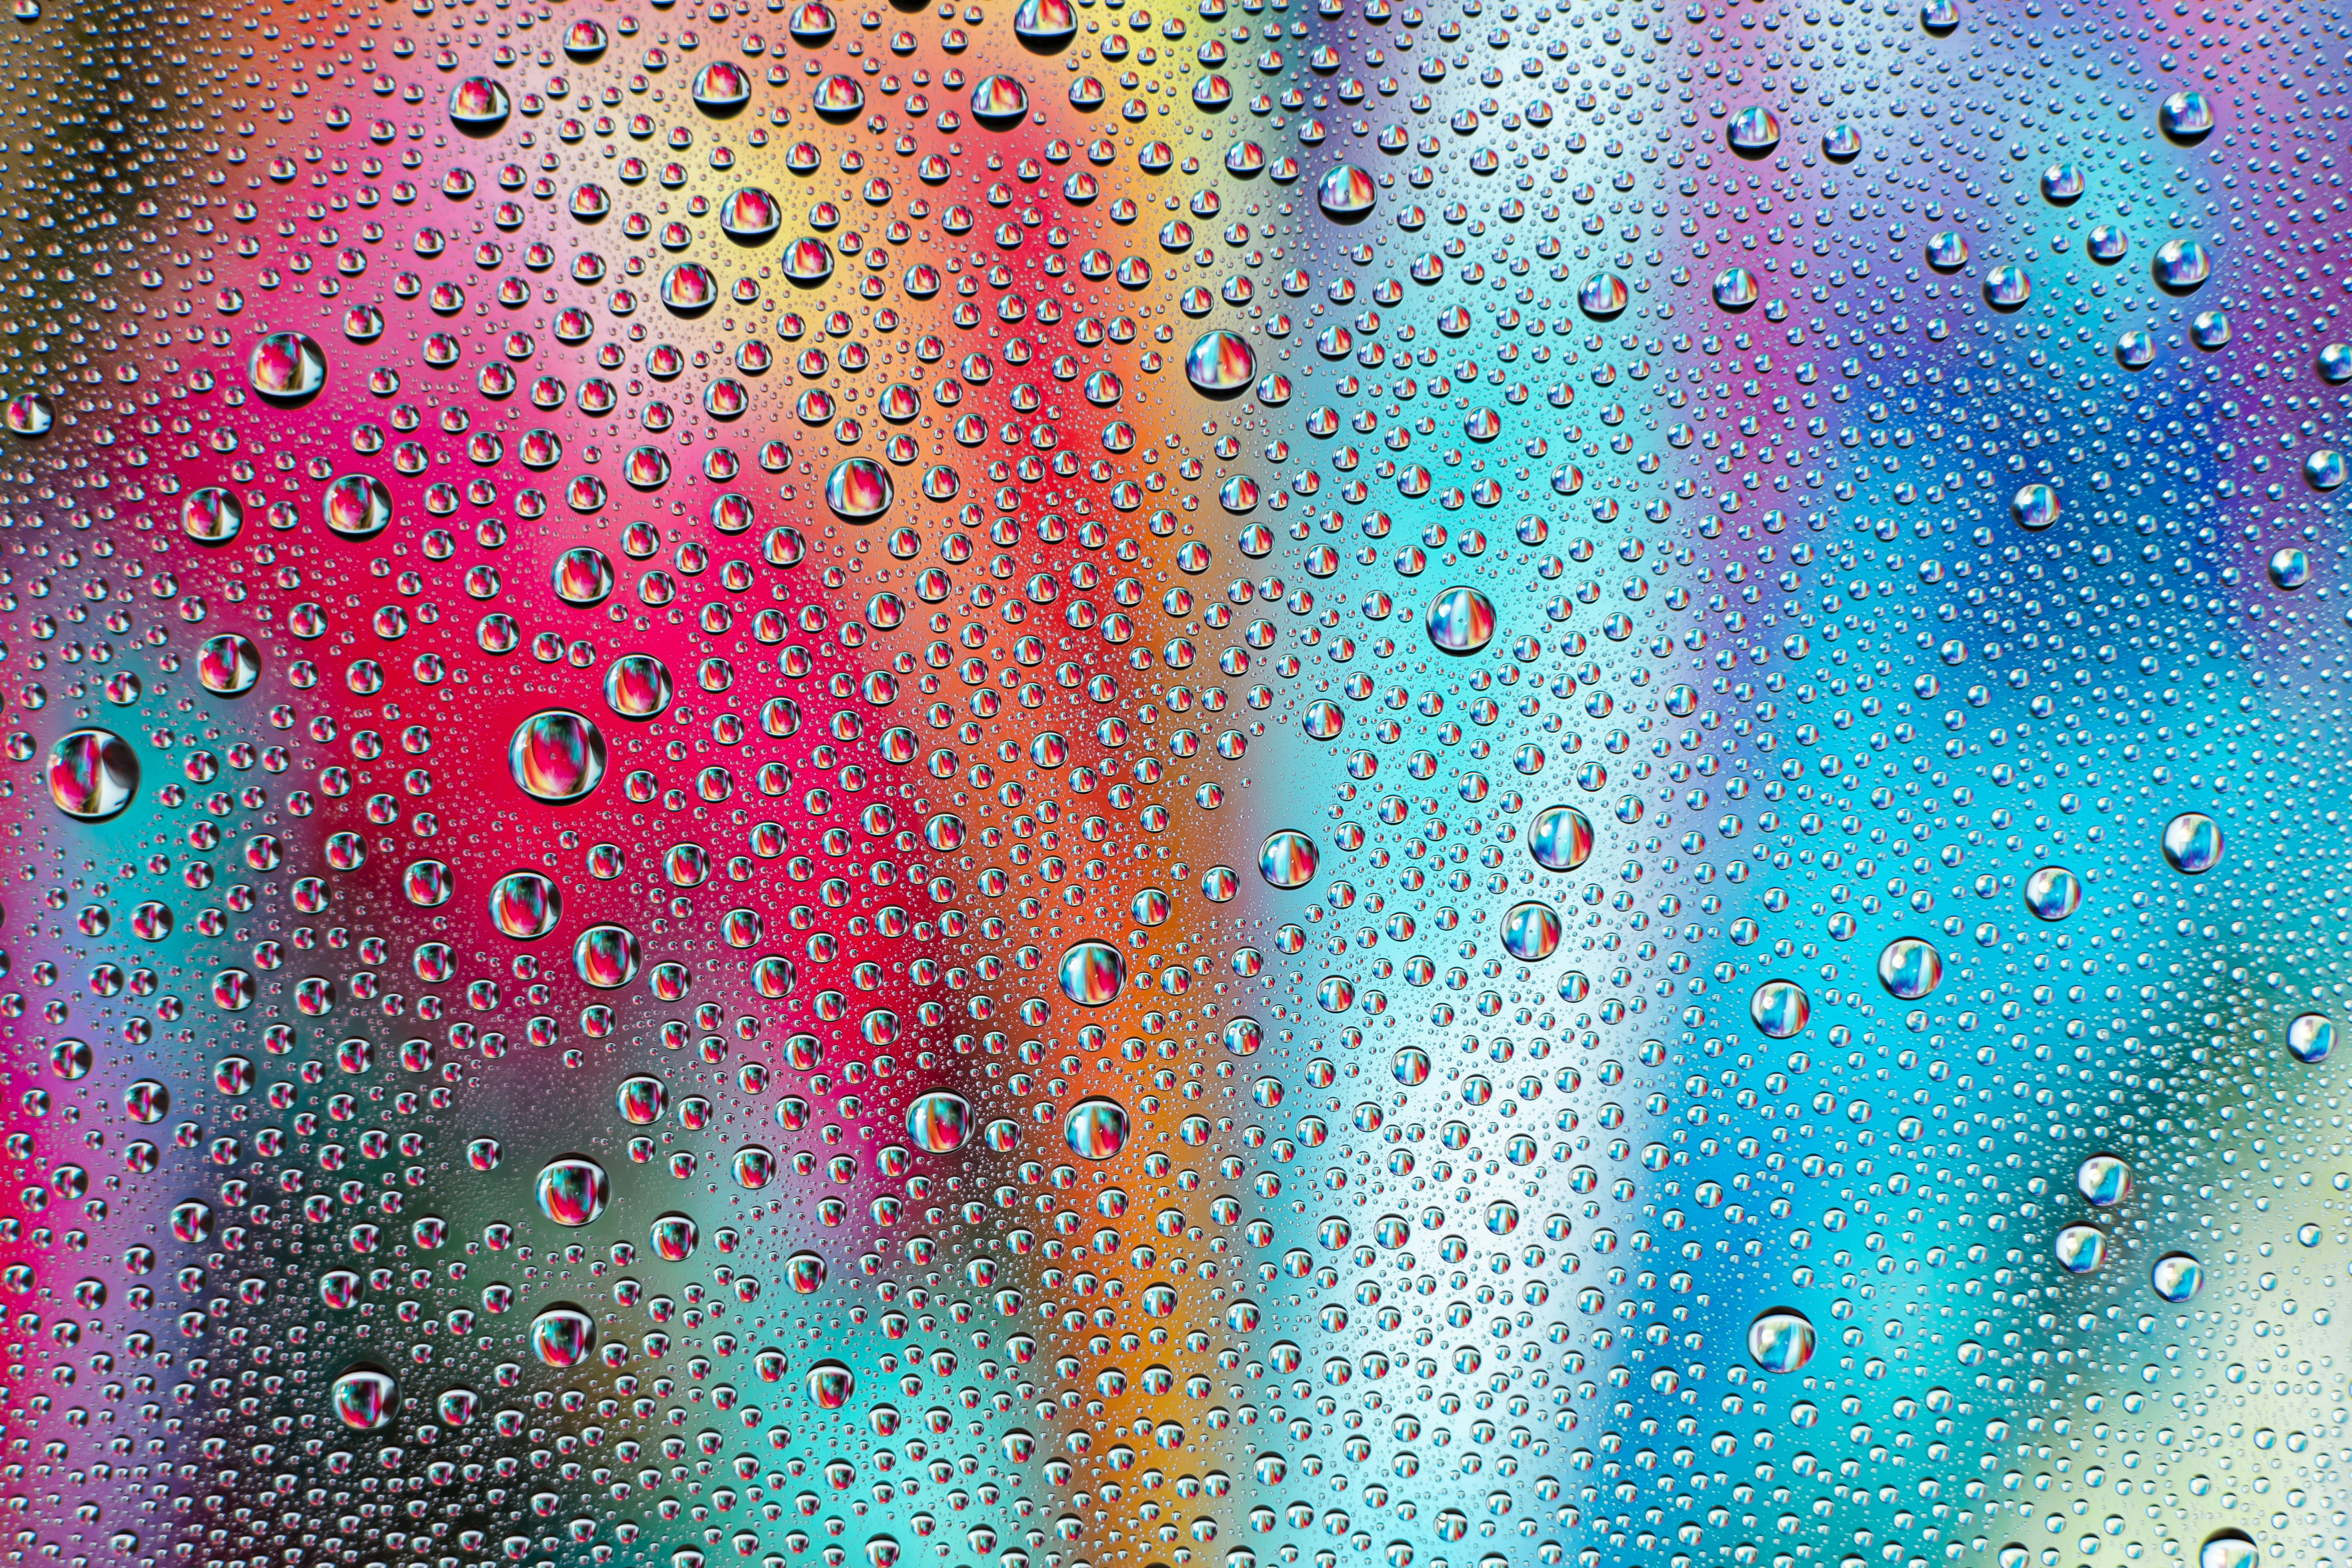 146968 download wallpaper Abstract, Drops, Macro, Wet, Gradient screensavers and pictures for free